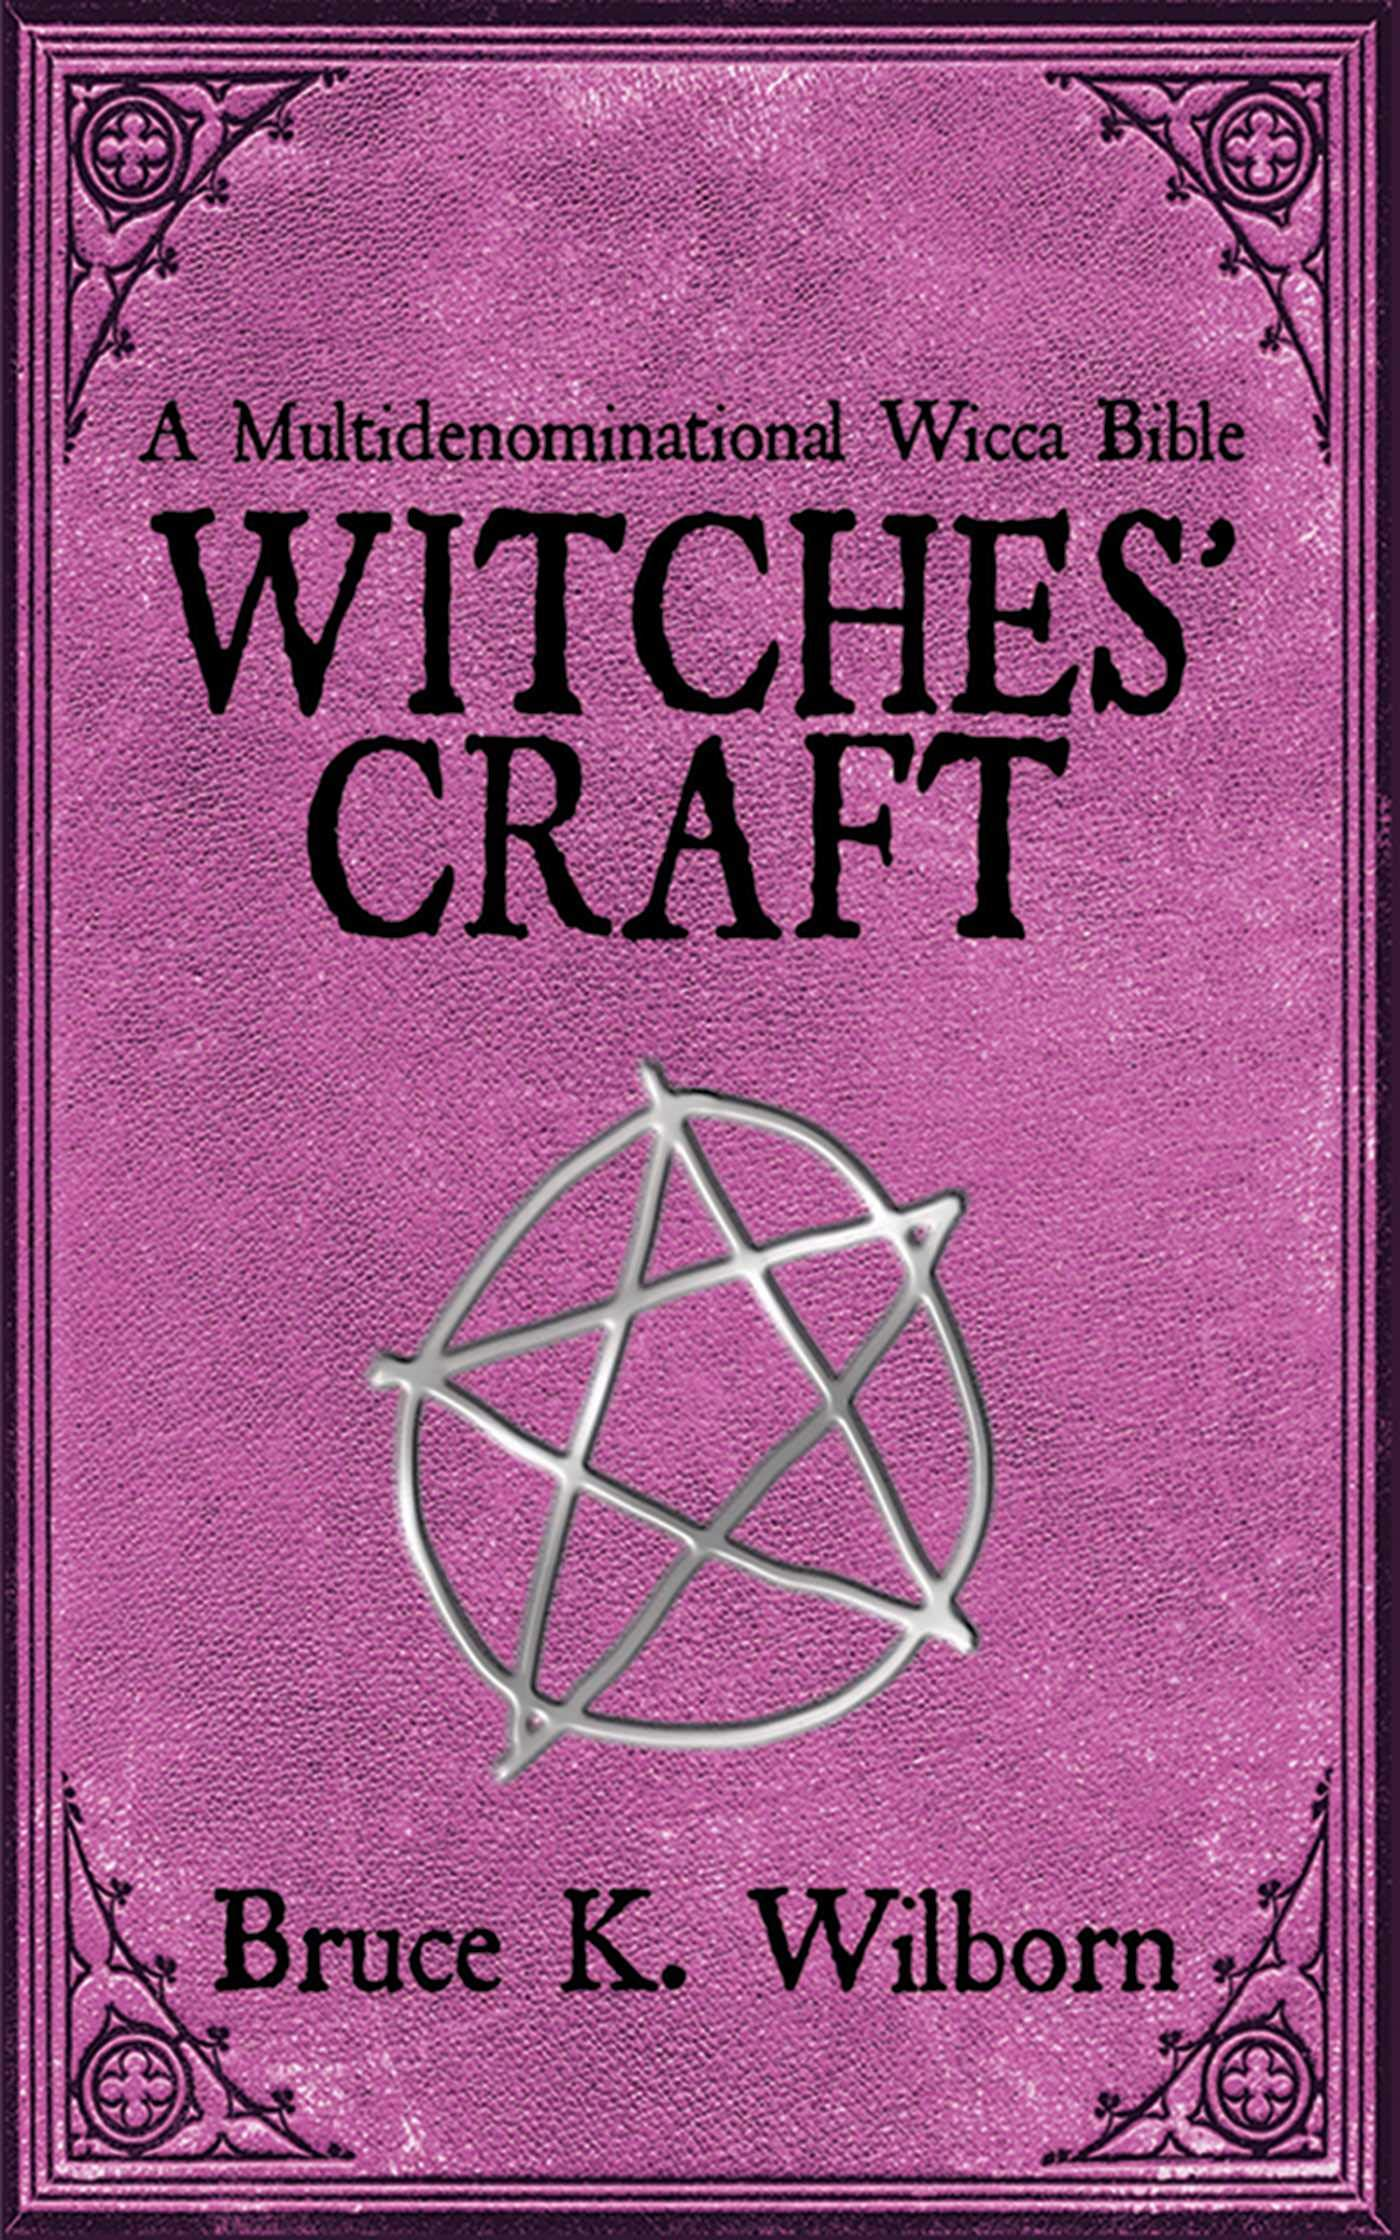 Witches' Craft: A Multidenominational Wicca Bible: Bruce K